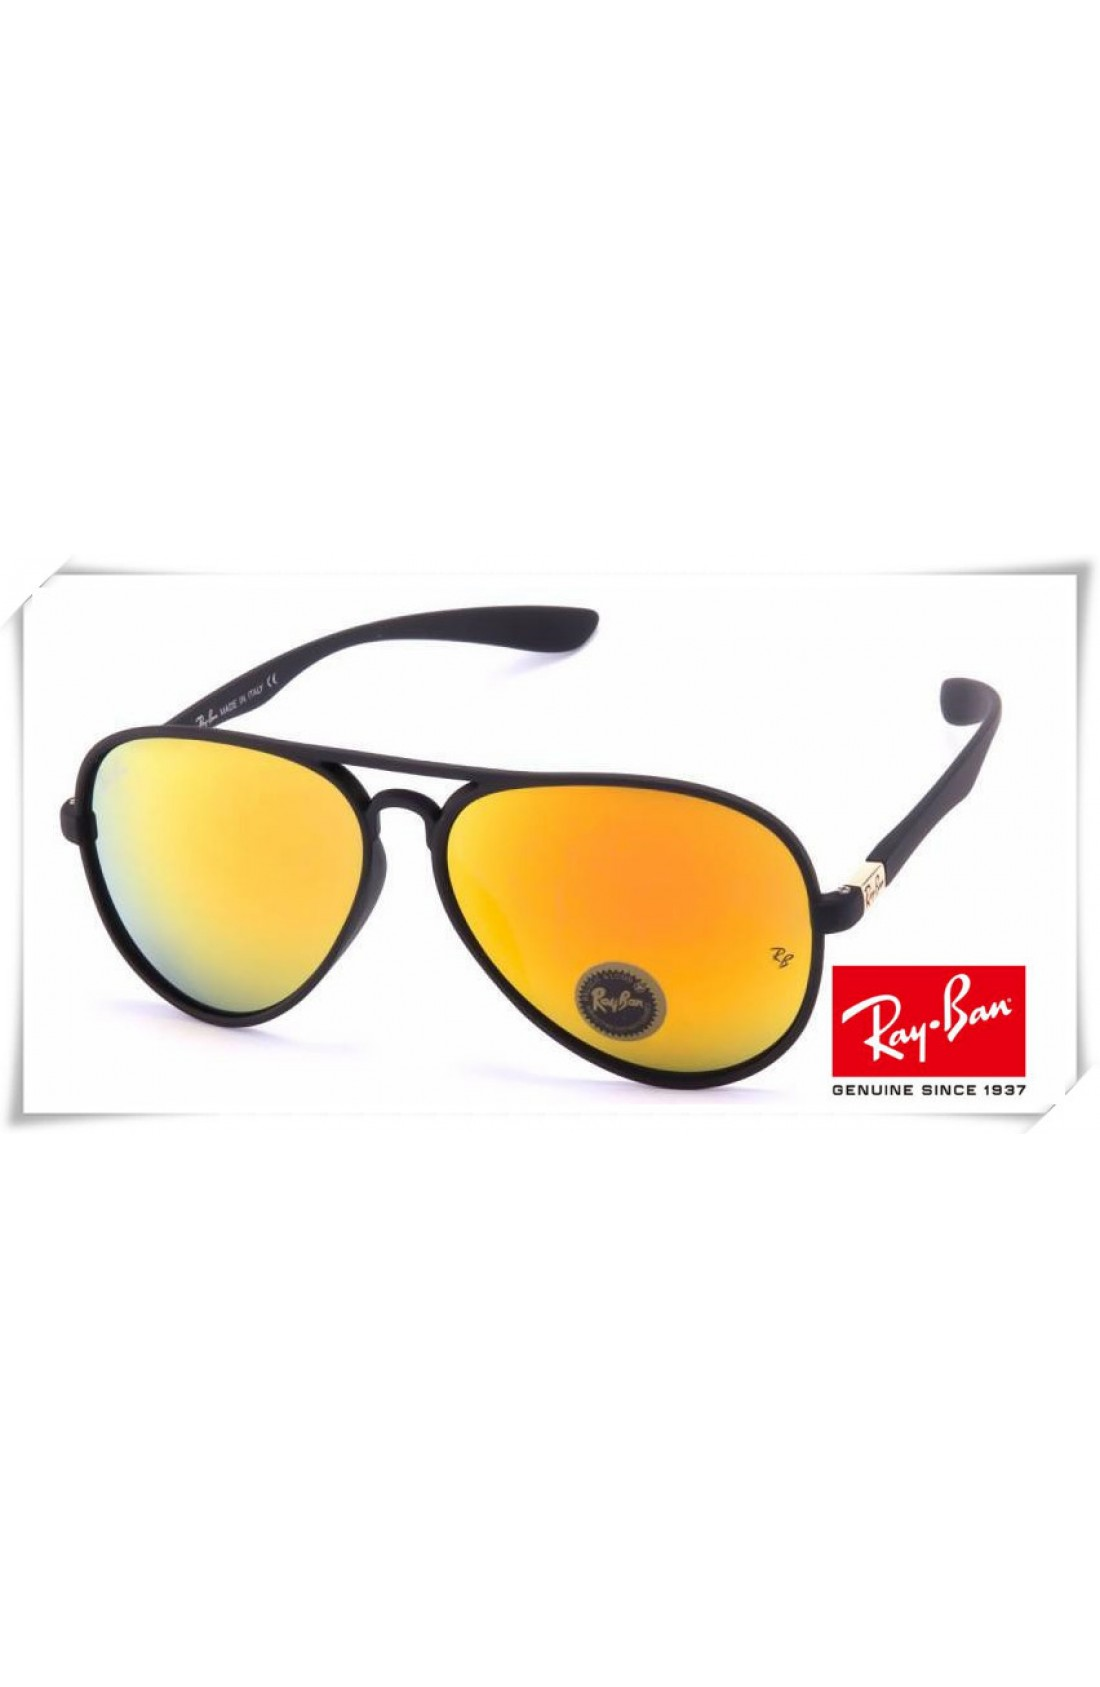 2b770937d13 Replica Ray Ban RB4180 Aviator Sunglasses Black Frame Yellow Mirror ...